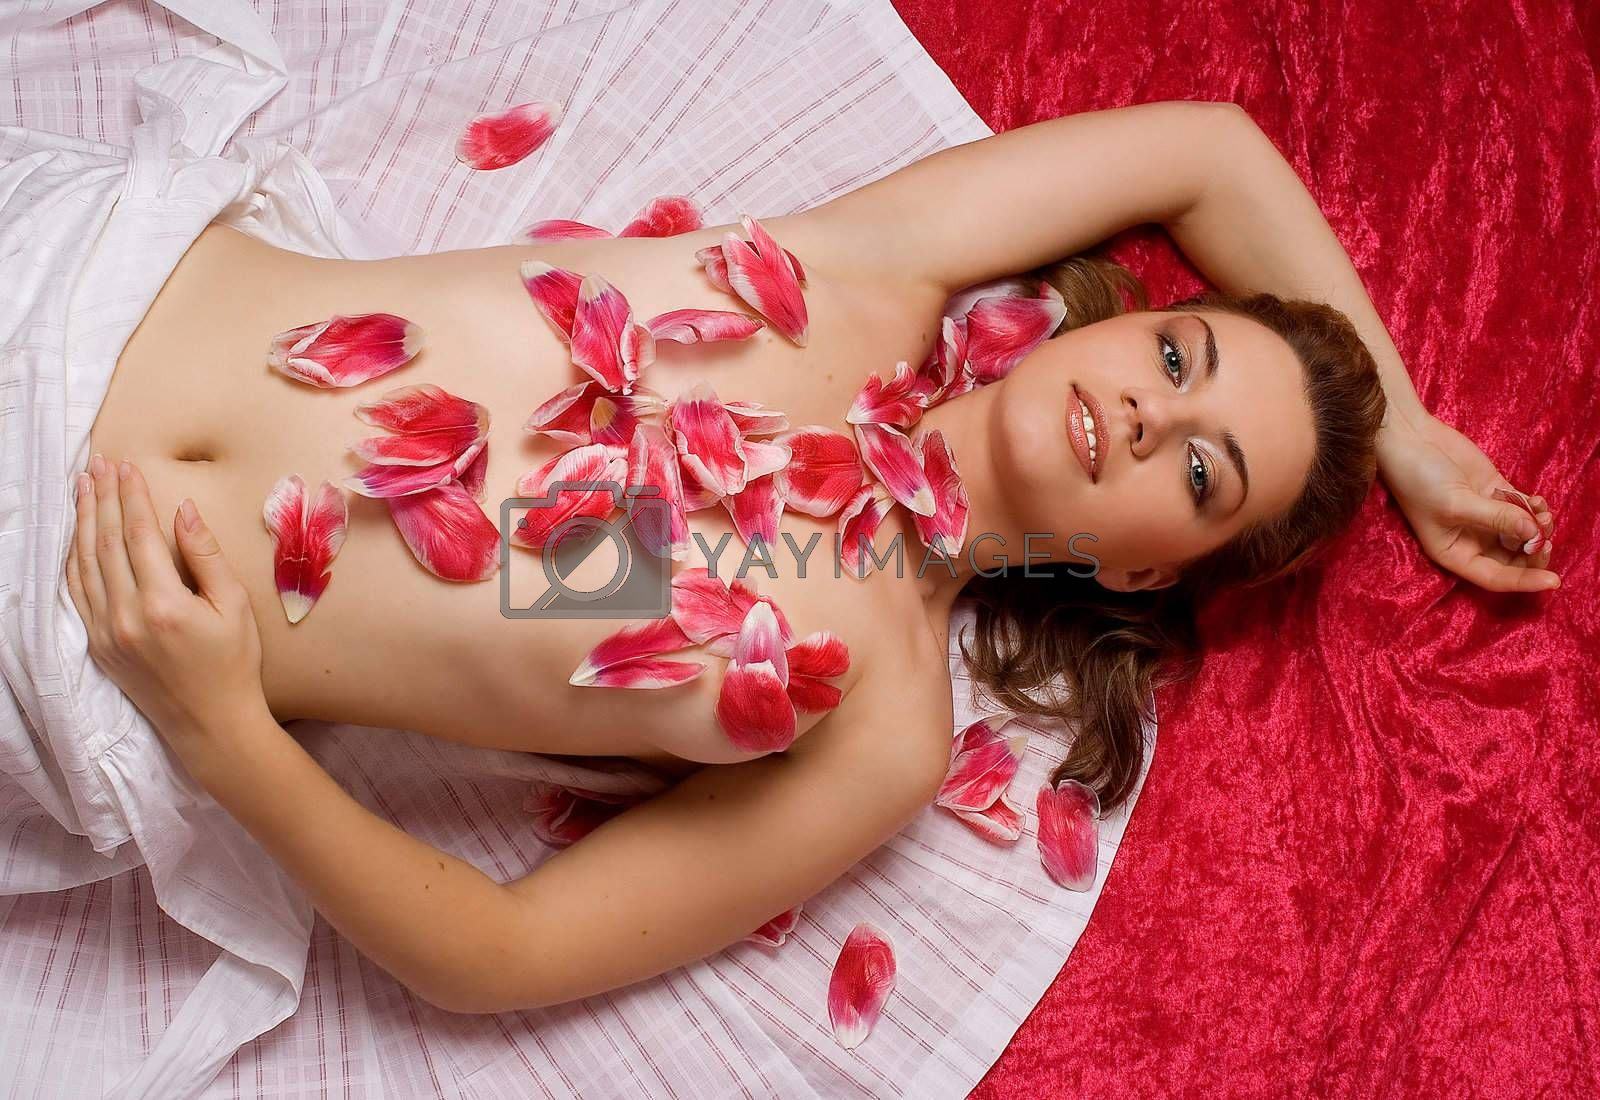 Woman covered with tulip petals